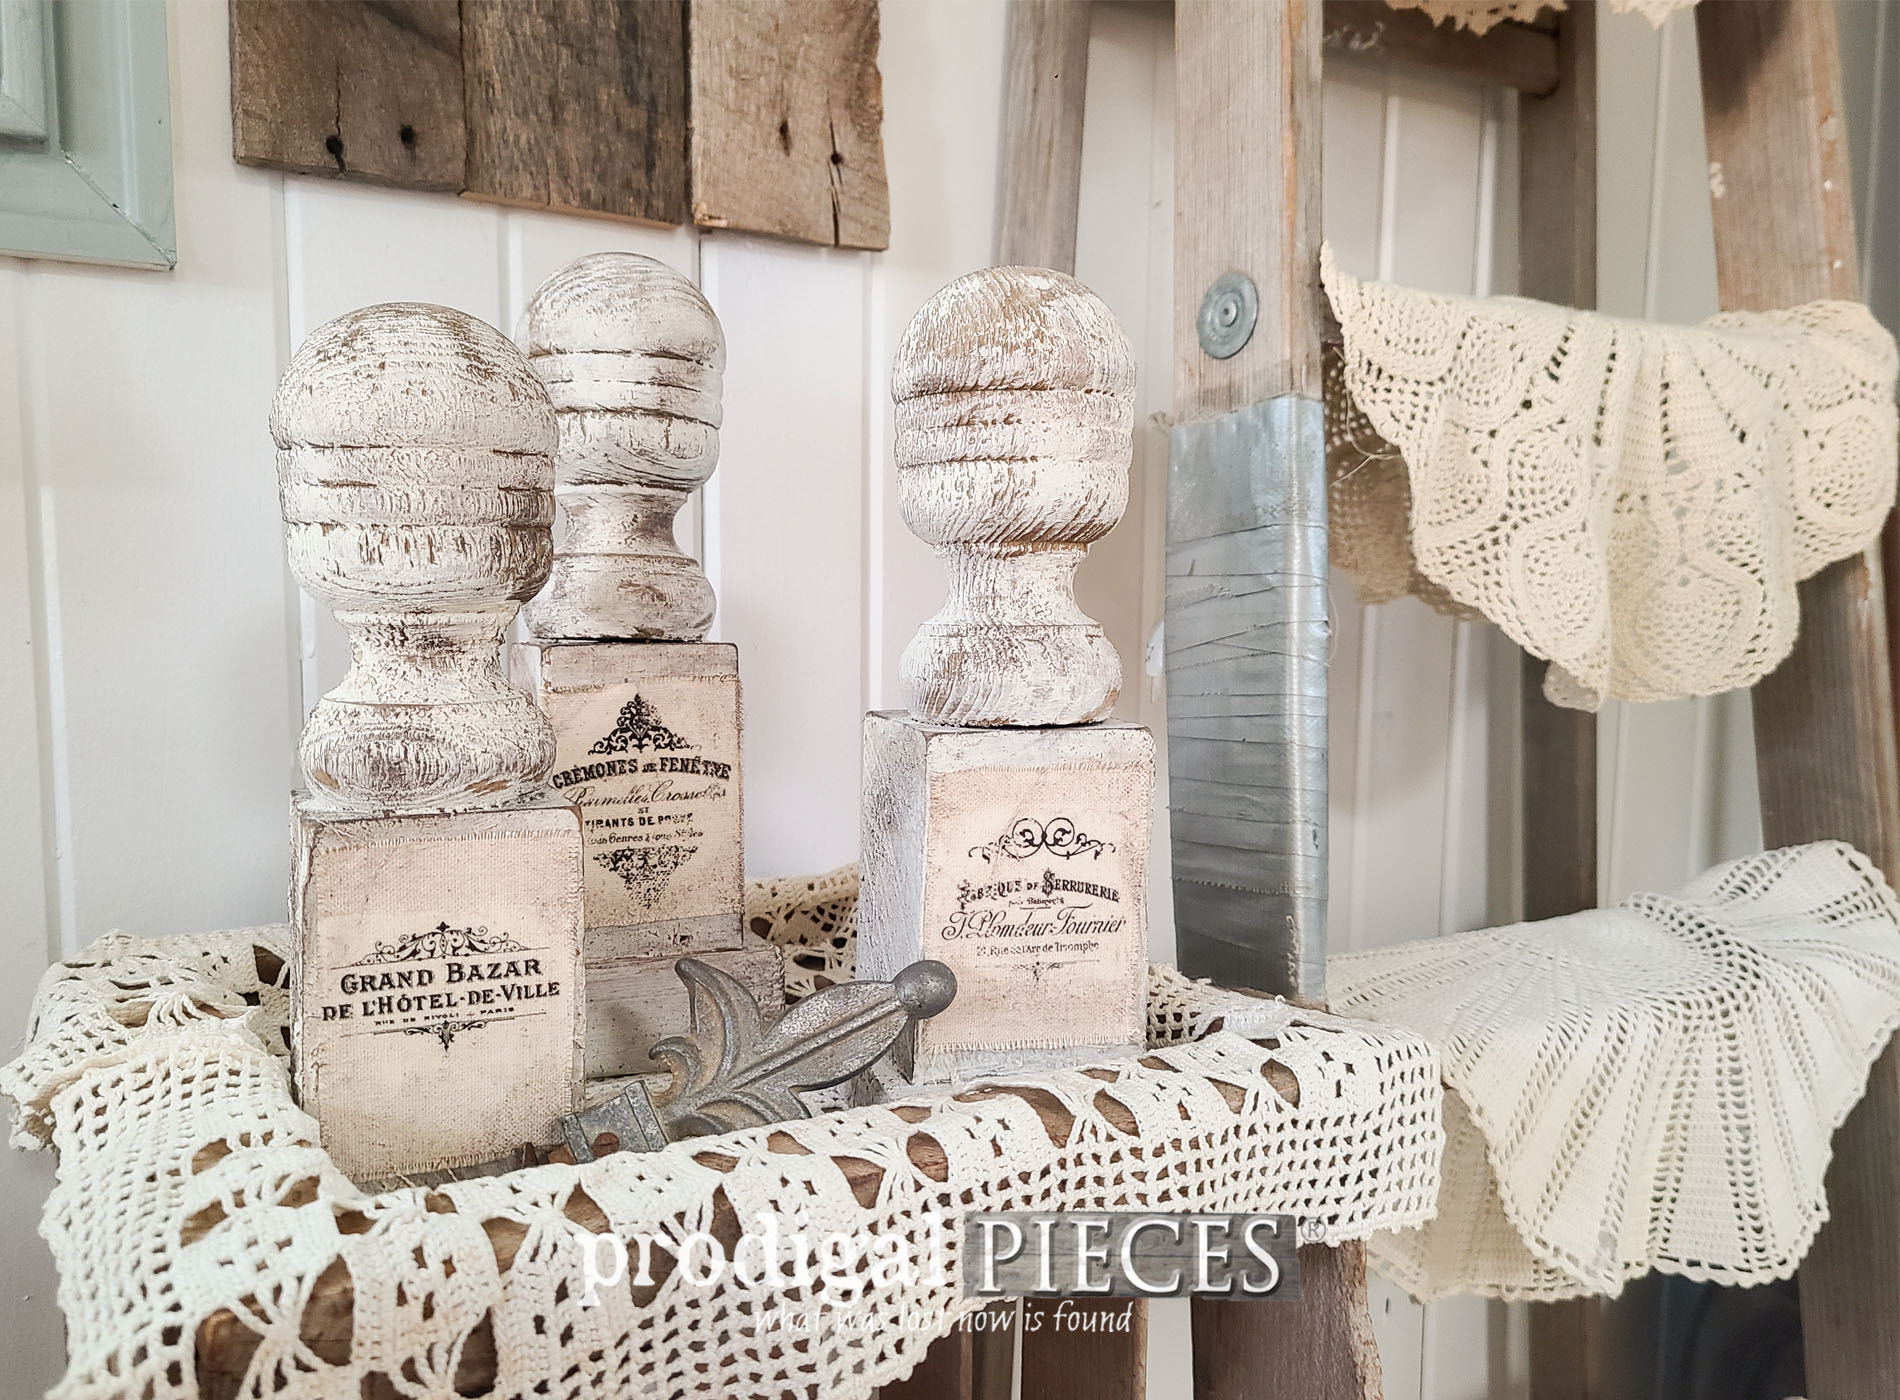 Featured French Farmhouse Upcycle Finials by Larissa of Prodigal Pieces | prodigalpieces.com #prodigalpieces #farmhouse #diy #home #french #antique